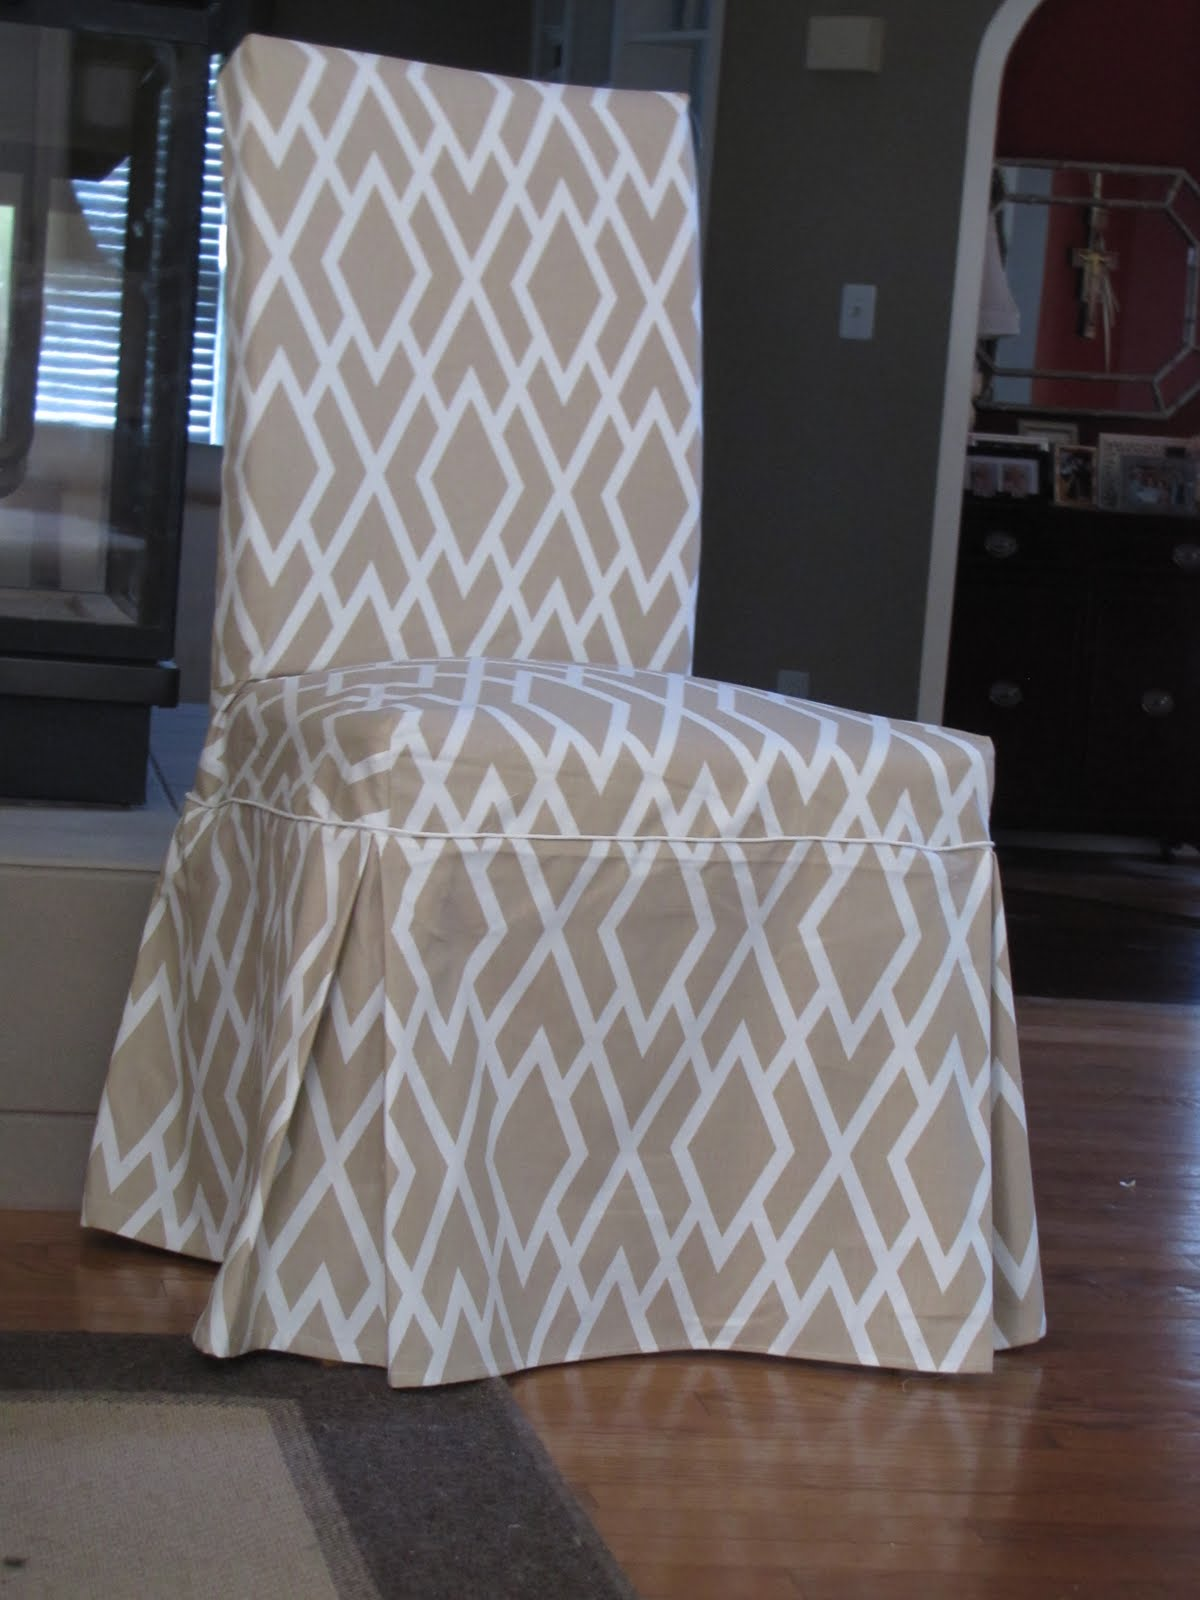 Dining Room Chair Patterns Bibbidi Bobbidi Beautiful Dining Chair Slipcovers